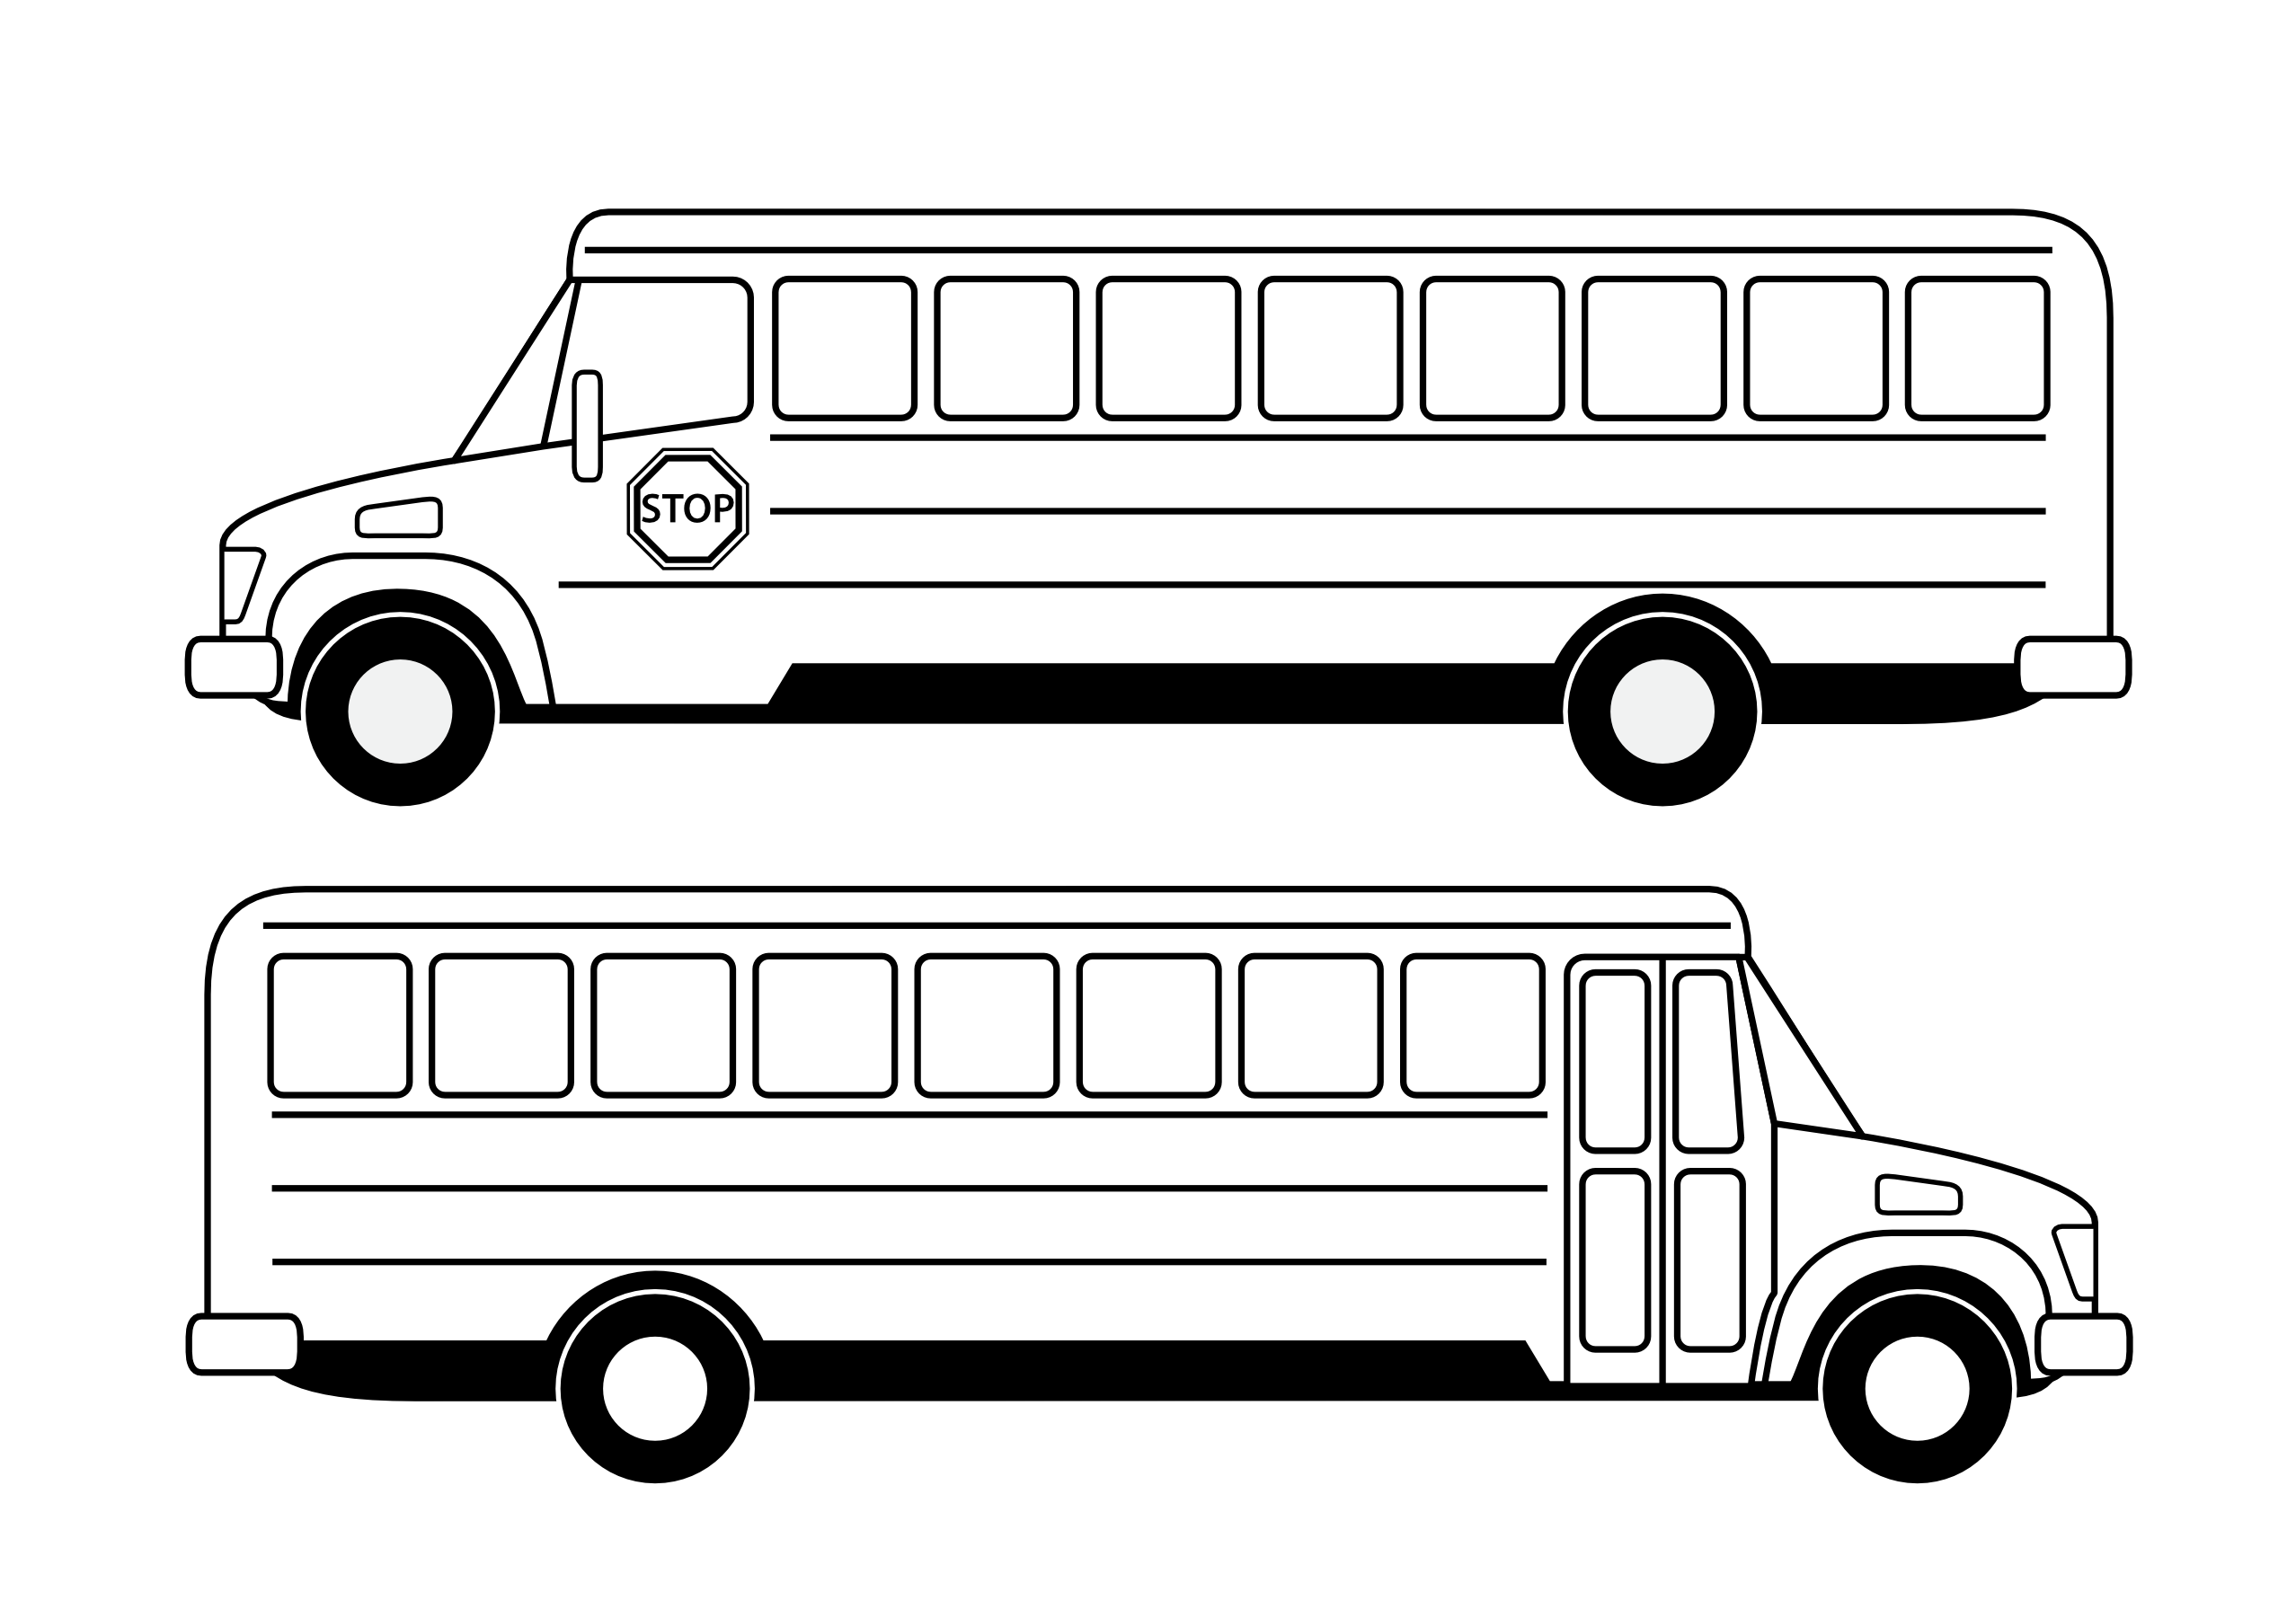 Best Bus Clipart Black And White #11176 - Clipartion.com